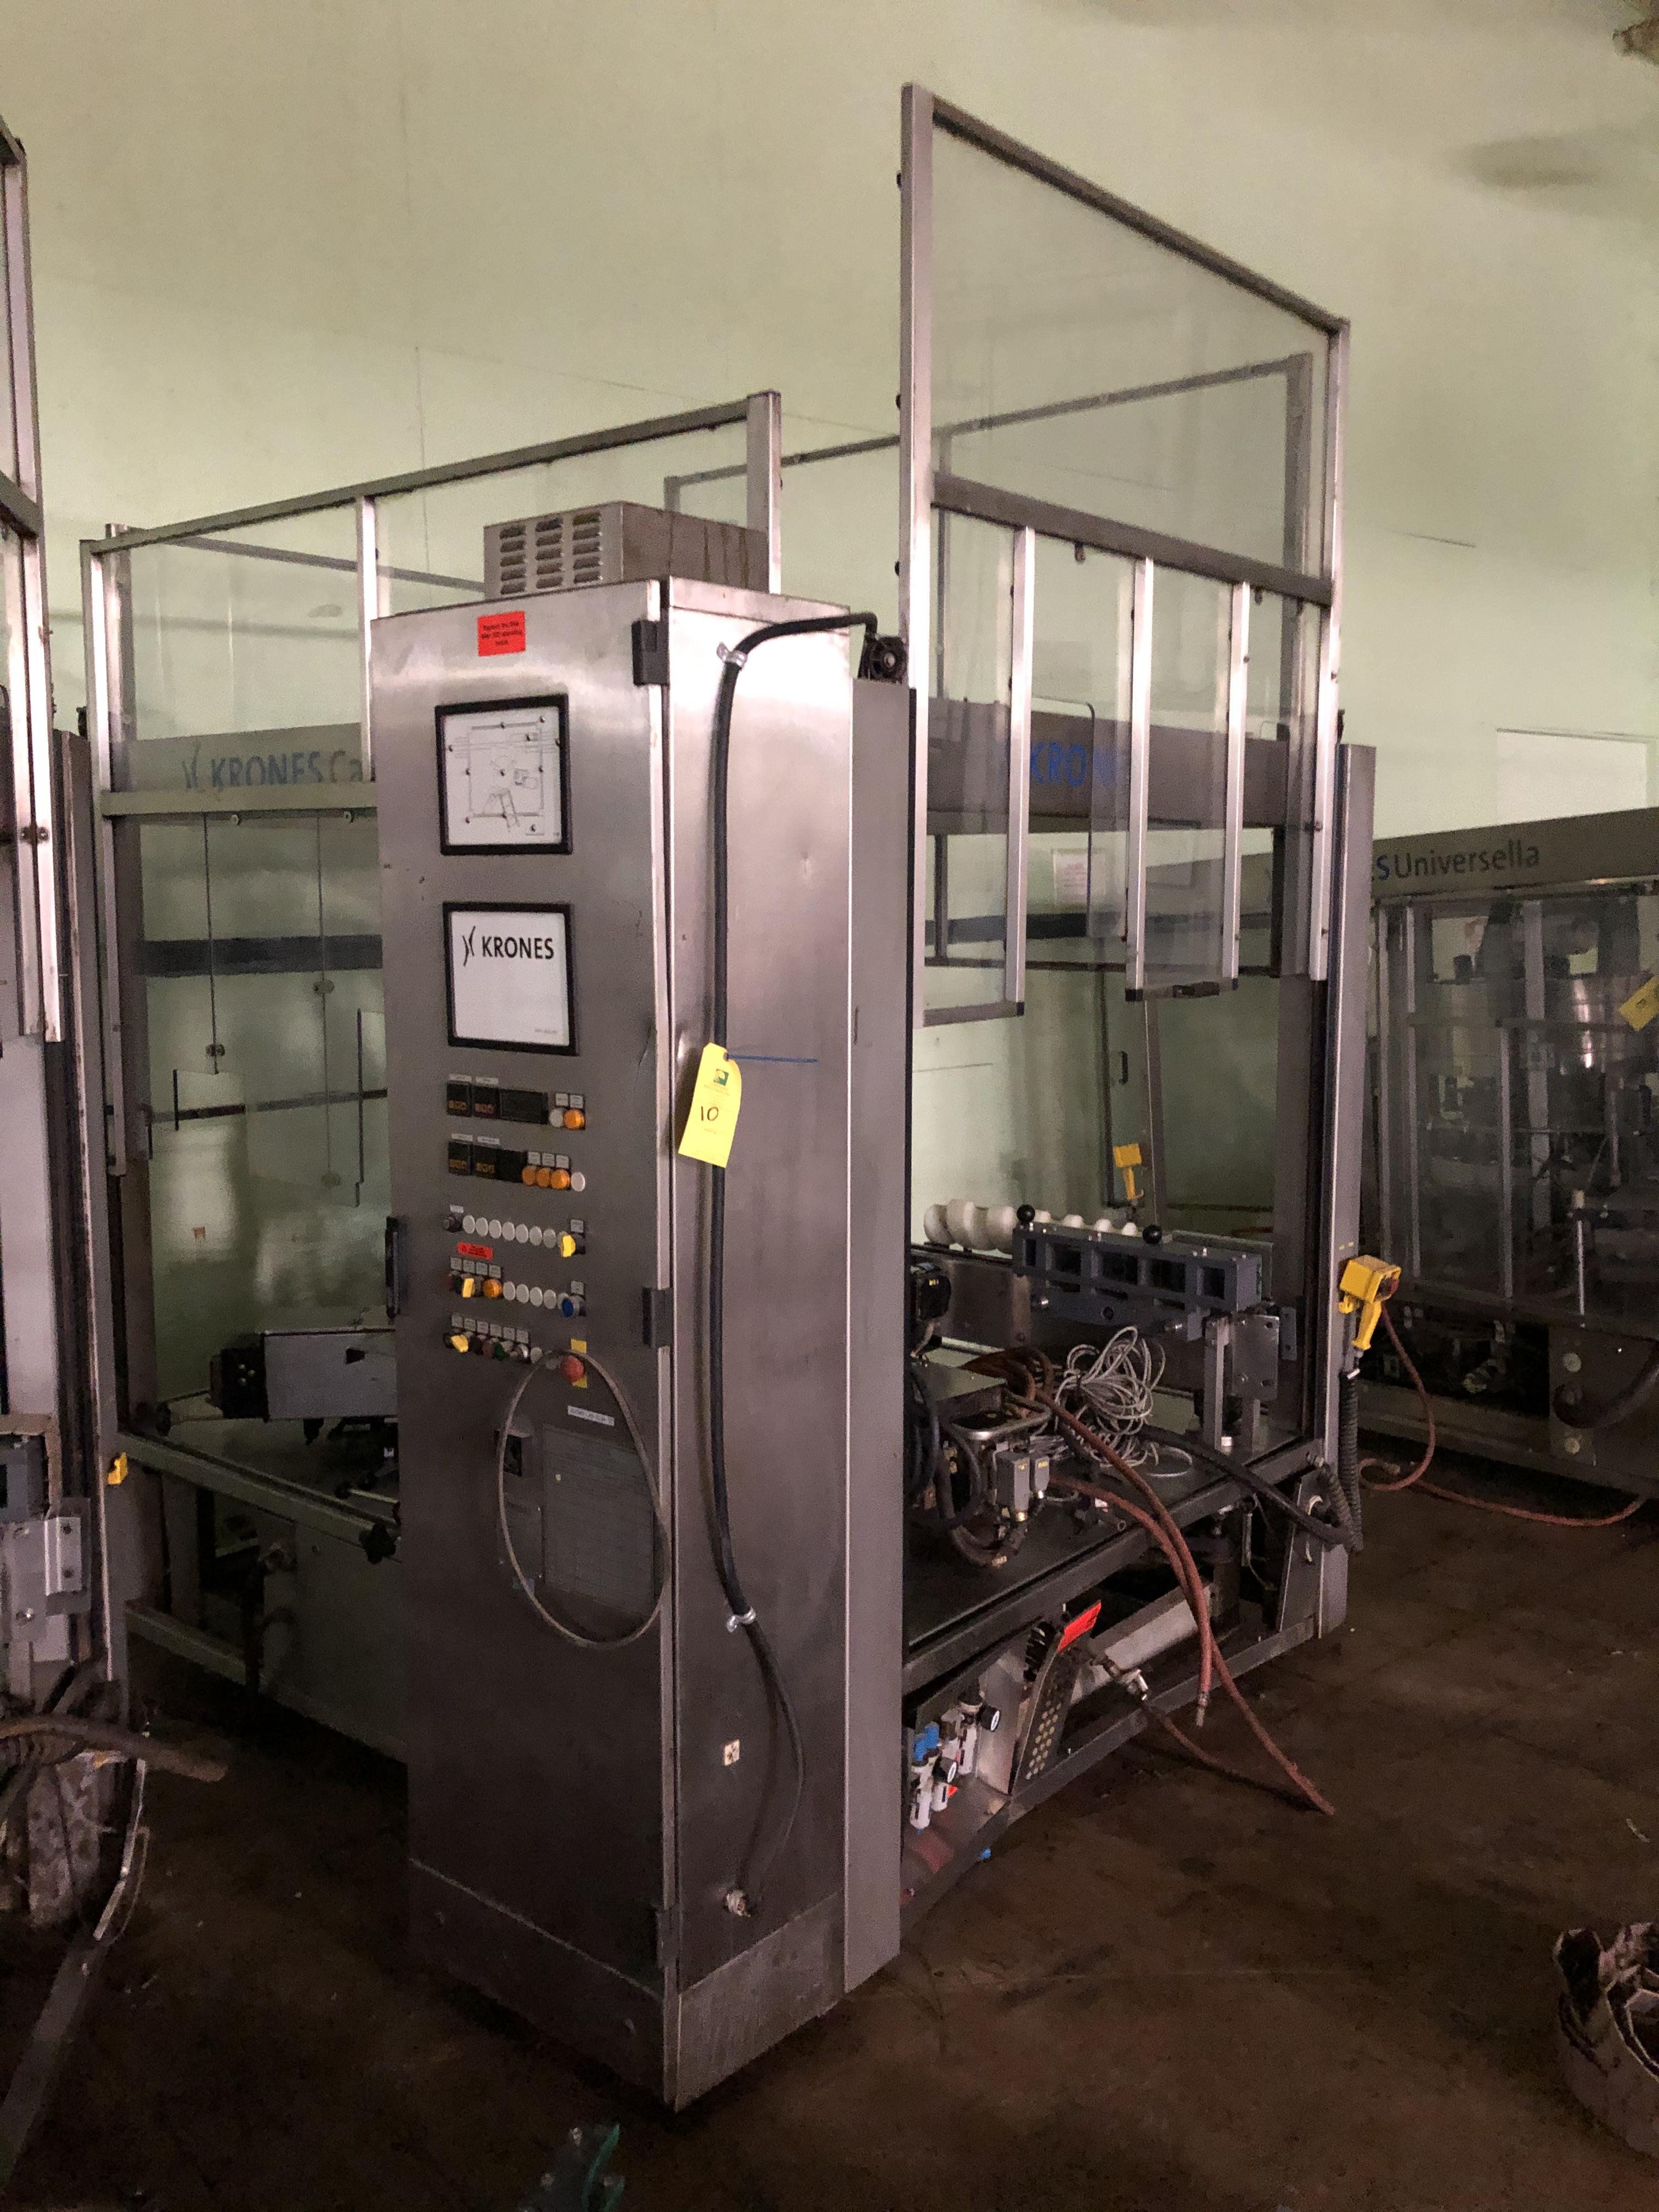 Krones Canmatic Labeler, Machine #073-Q84, RIGGING FEE - $1750 - Image 3 of 4